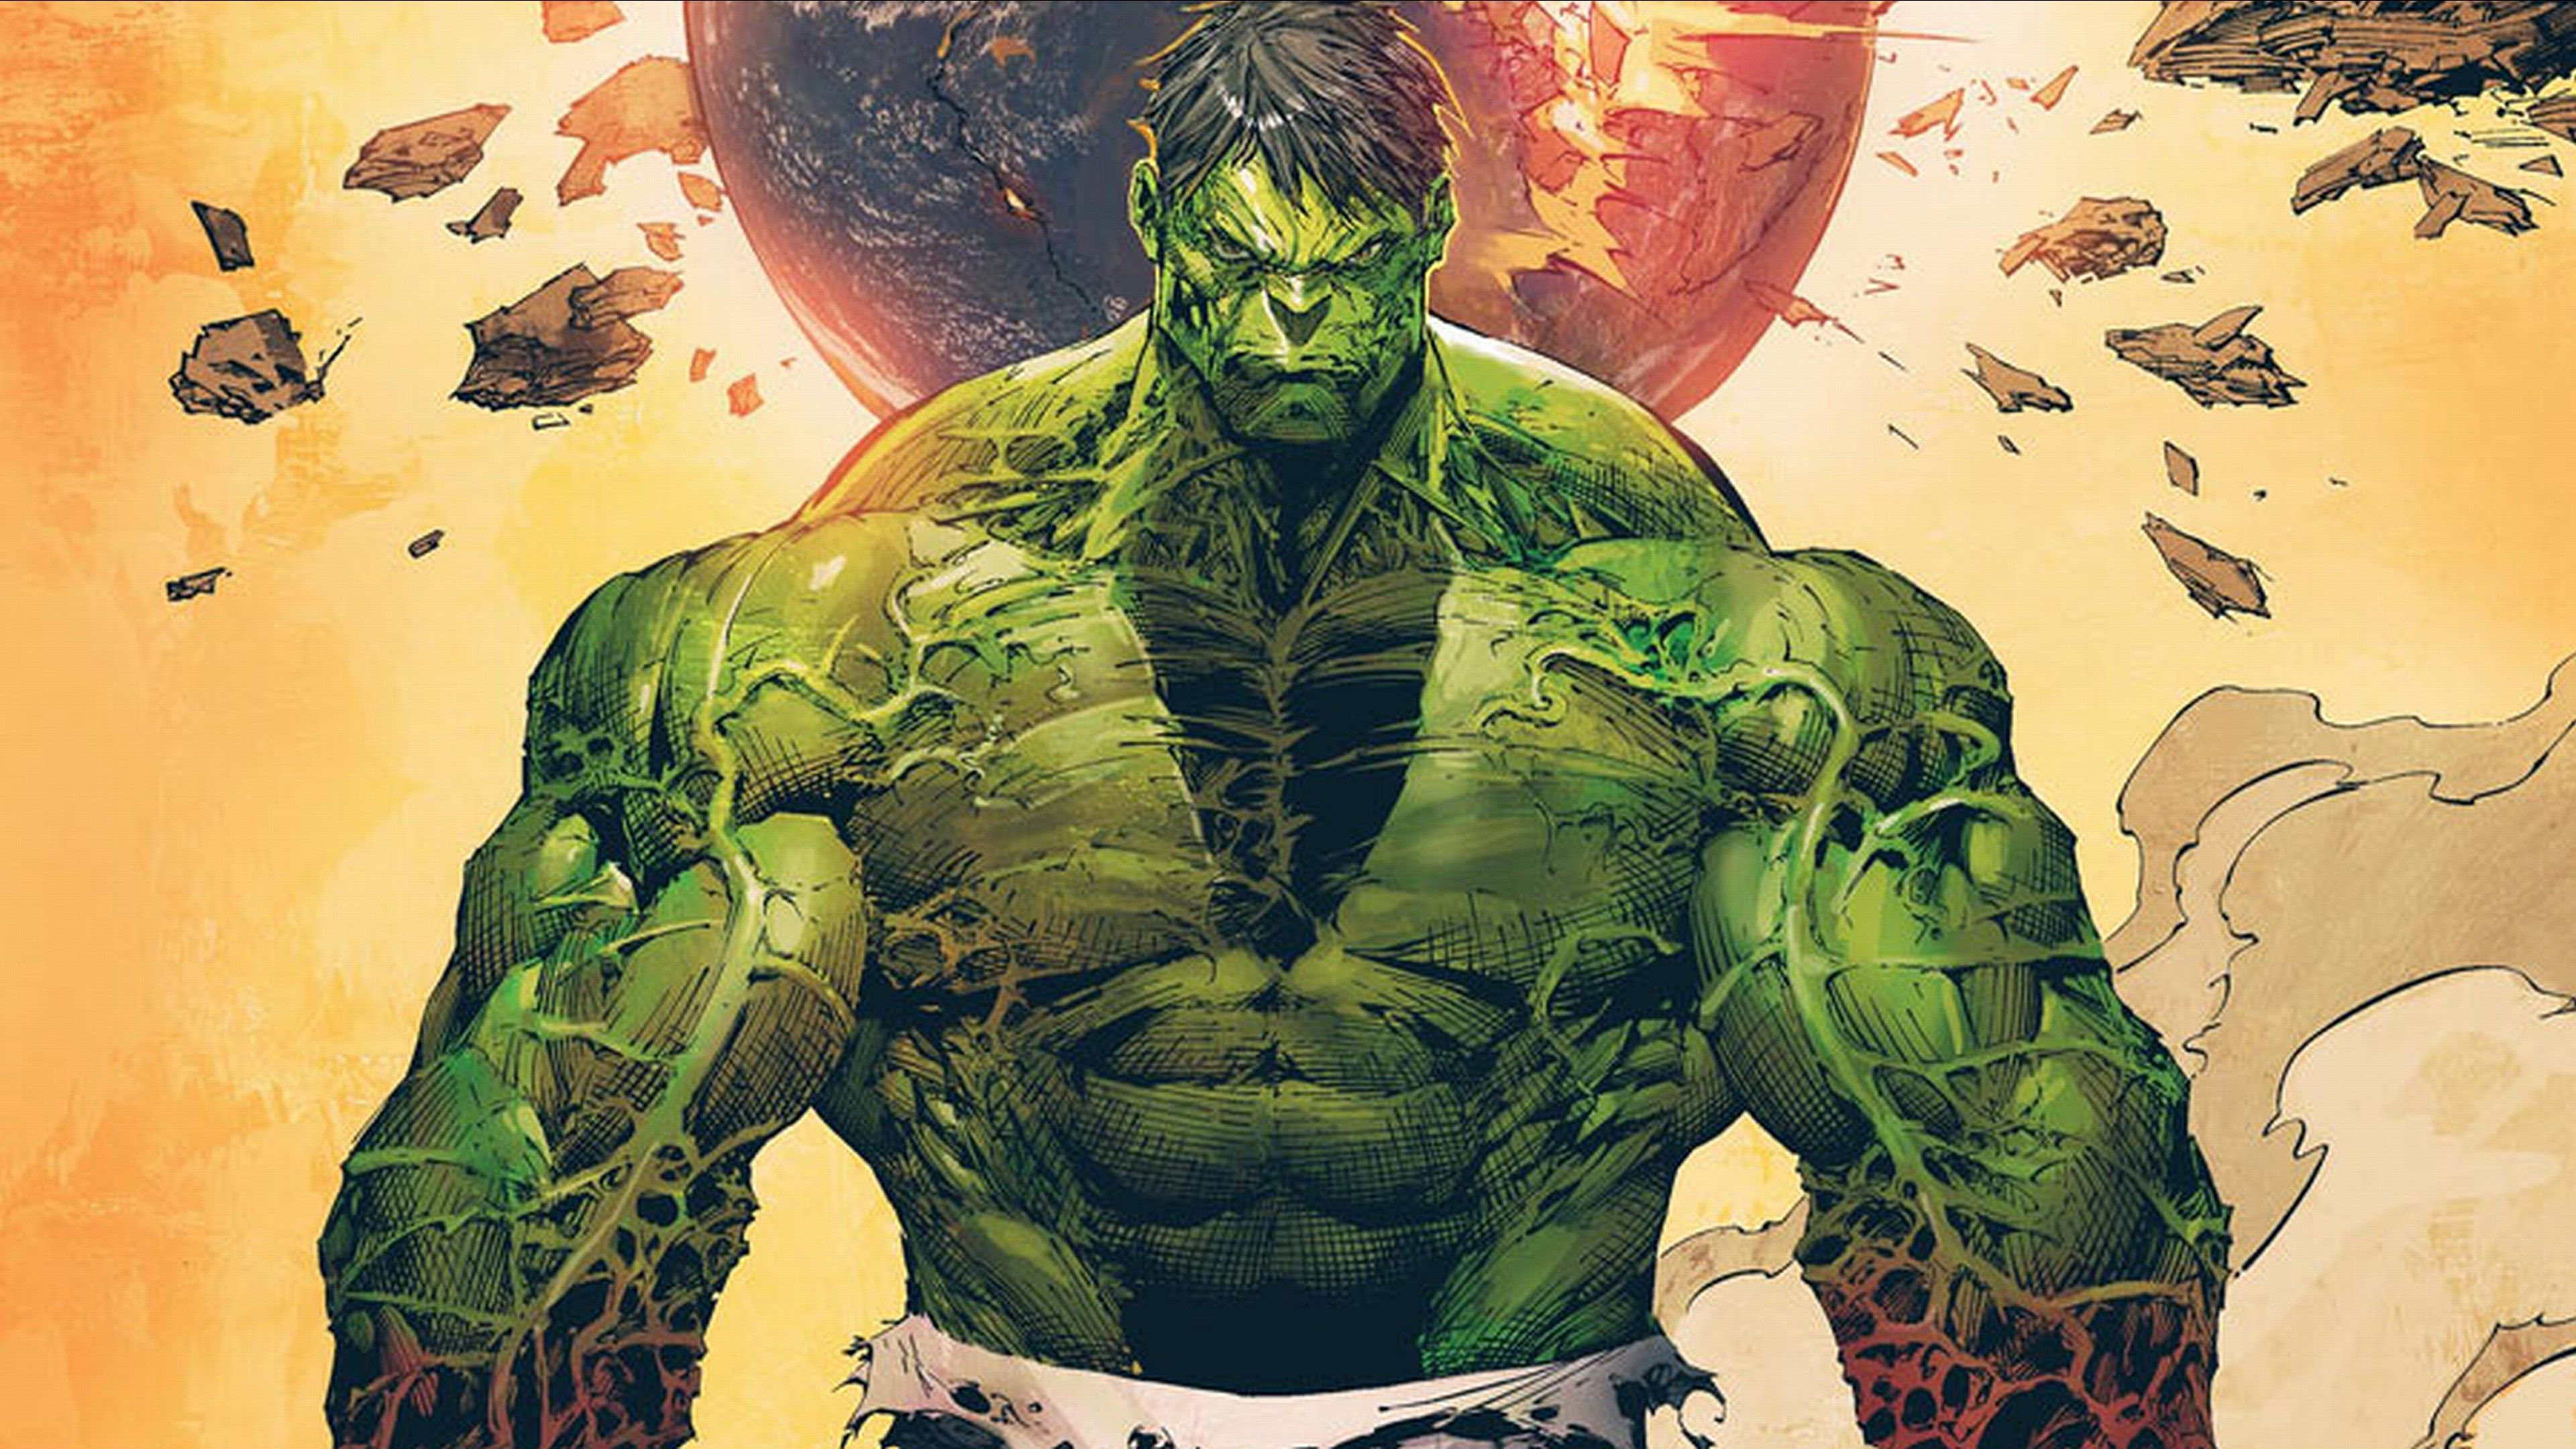 Hulk Image To Download 3840x2160 1300 Kb World War Hulk Hulk Comic Superhero